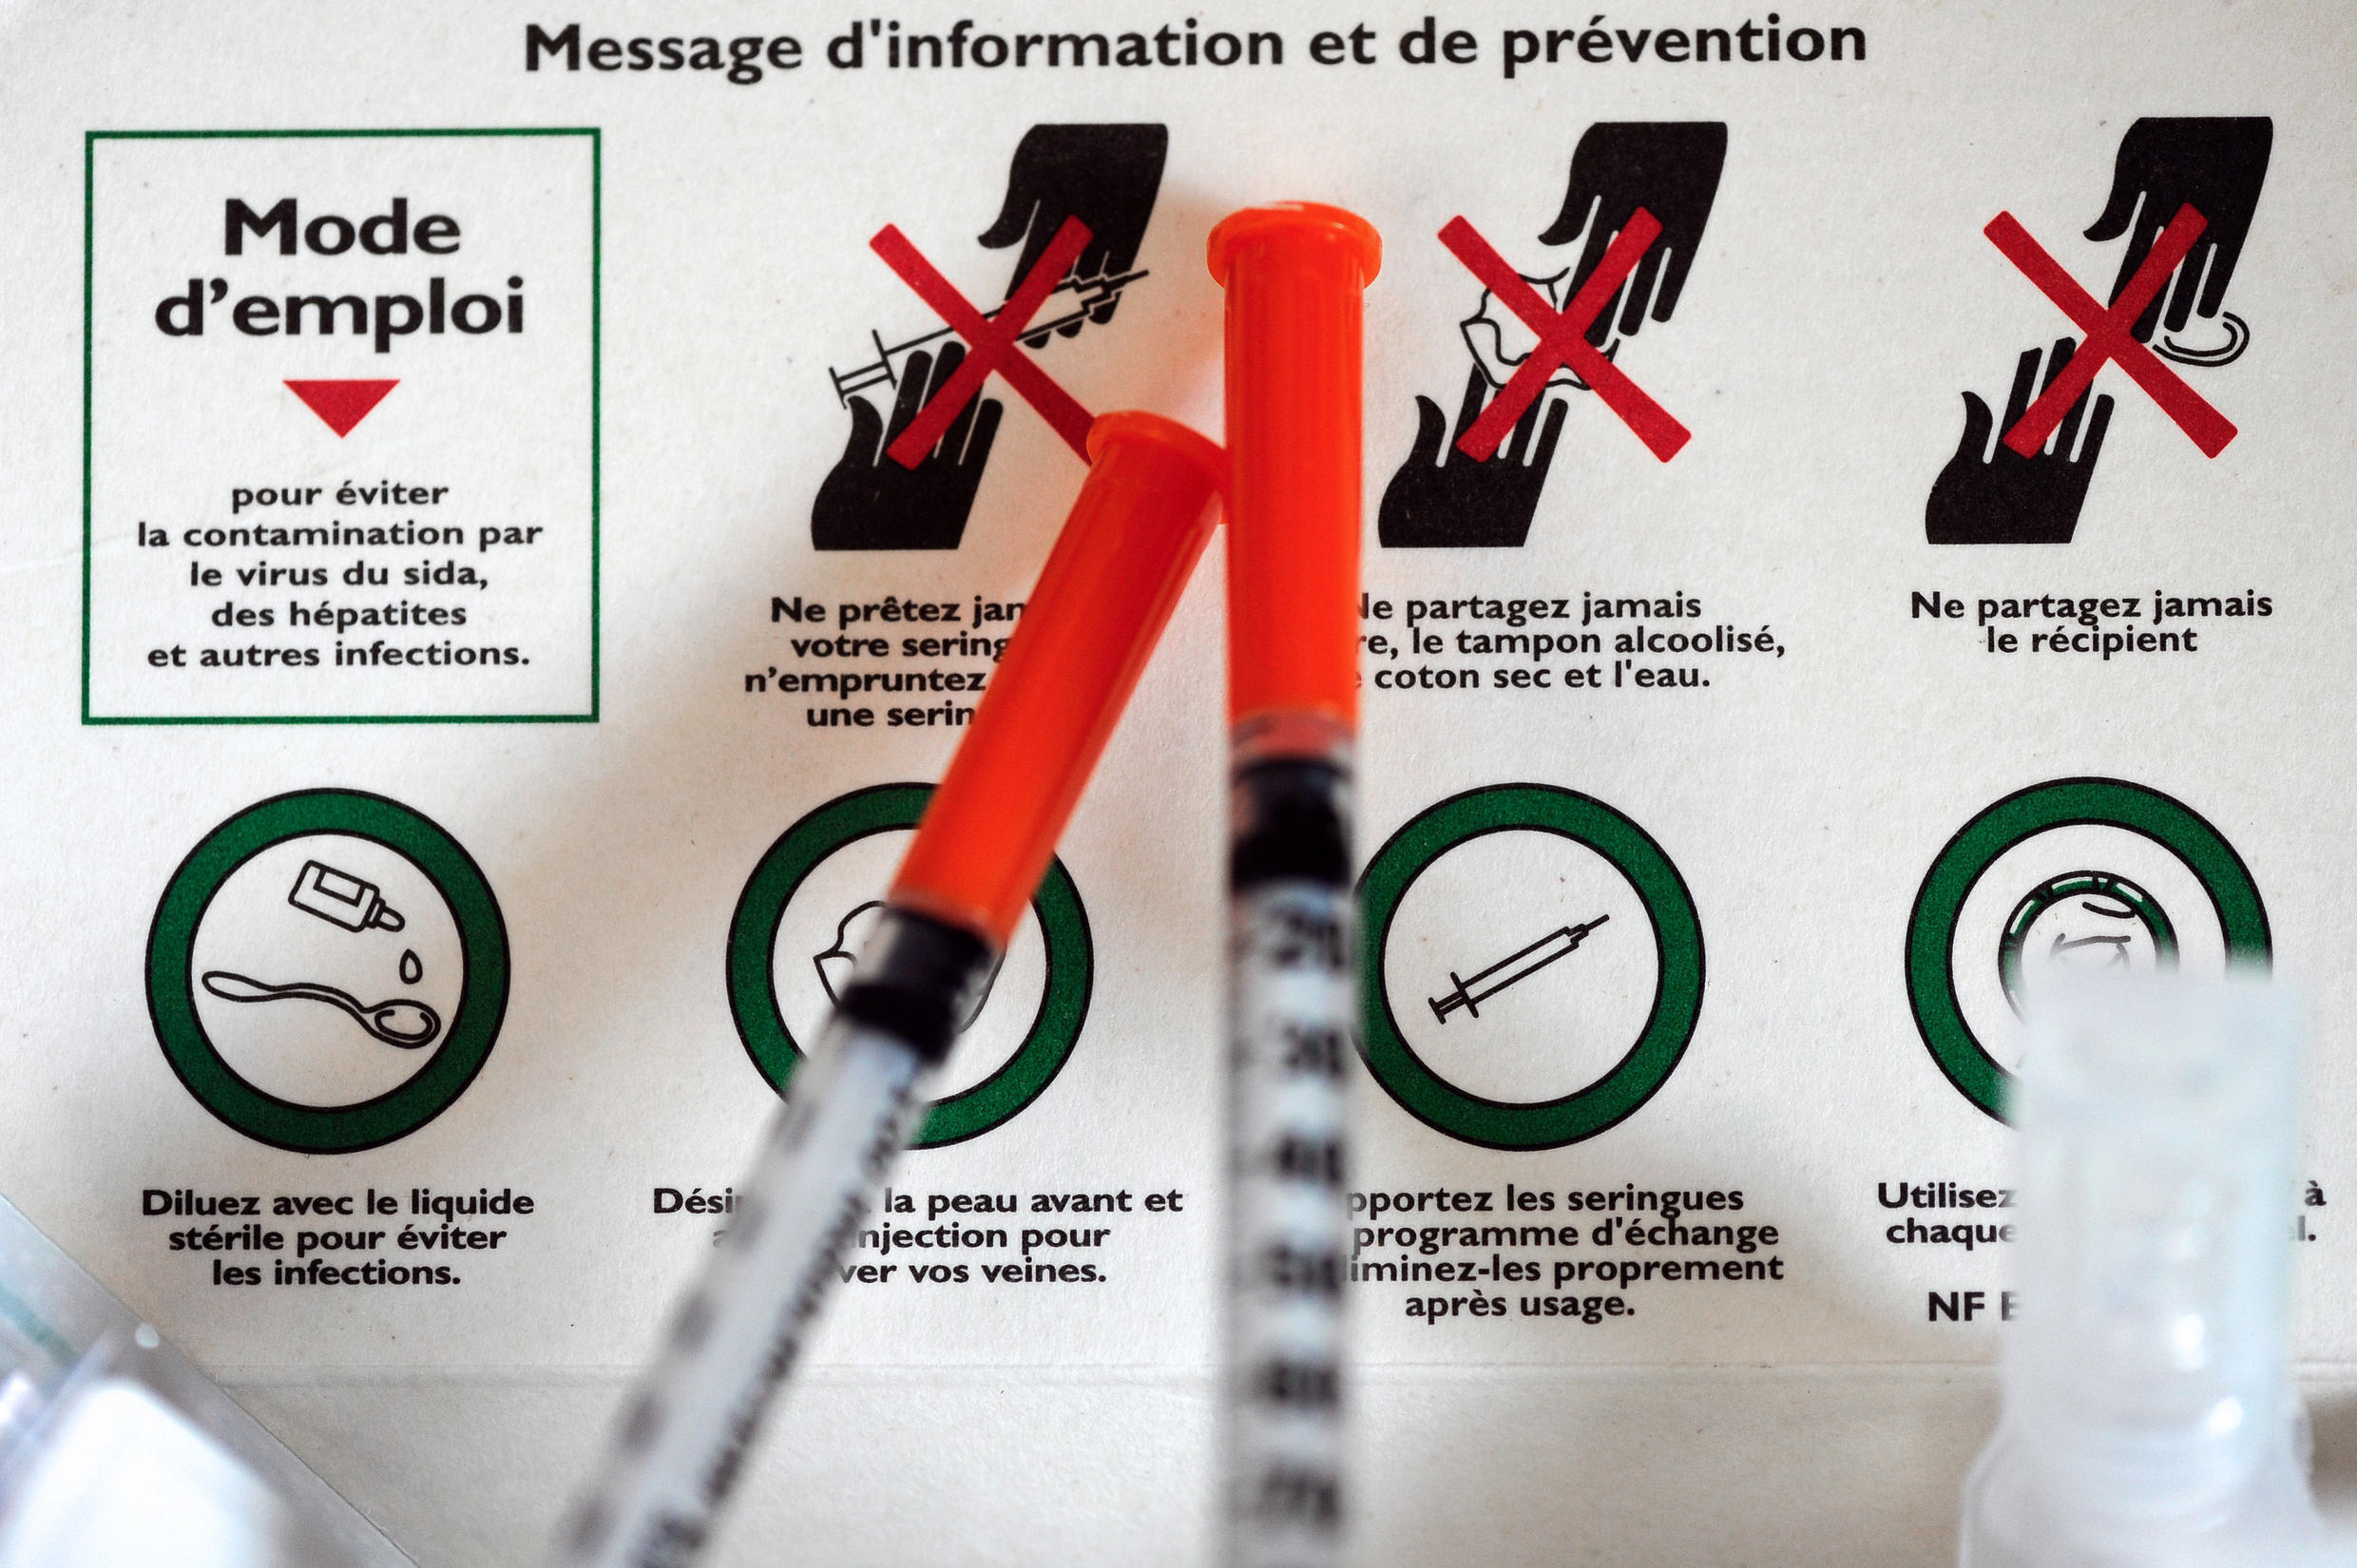 A photo taken on April 29, 2013 in Paris shows a kit containing materials to inject drugs distributed by the Gaia association.